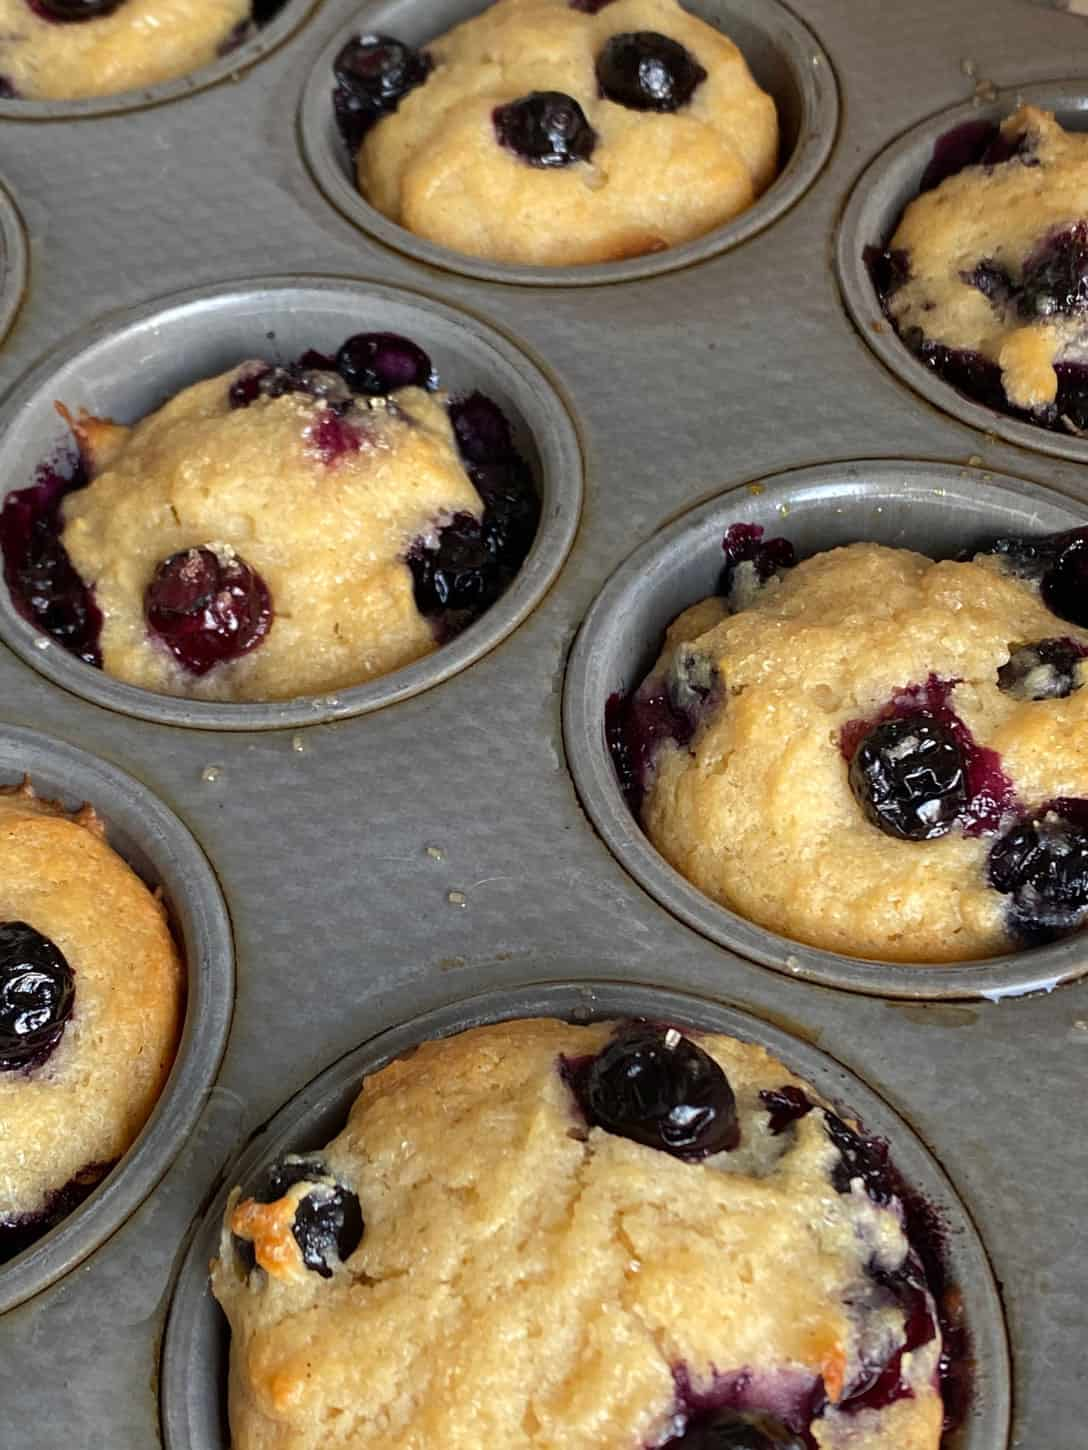 Muffins Loaded With Blueberries